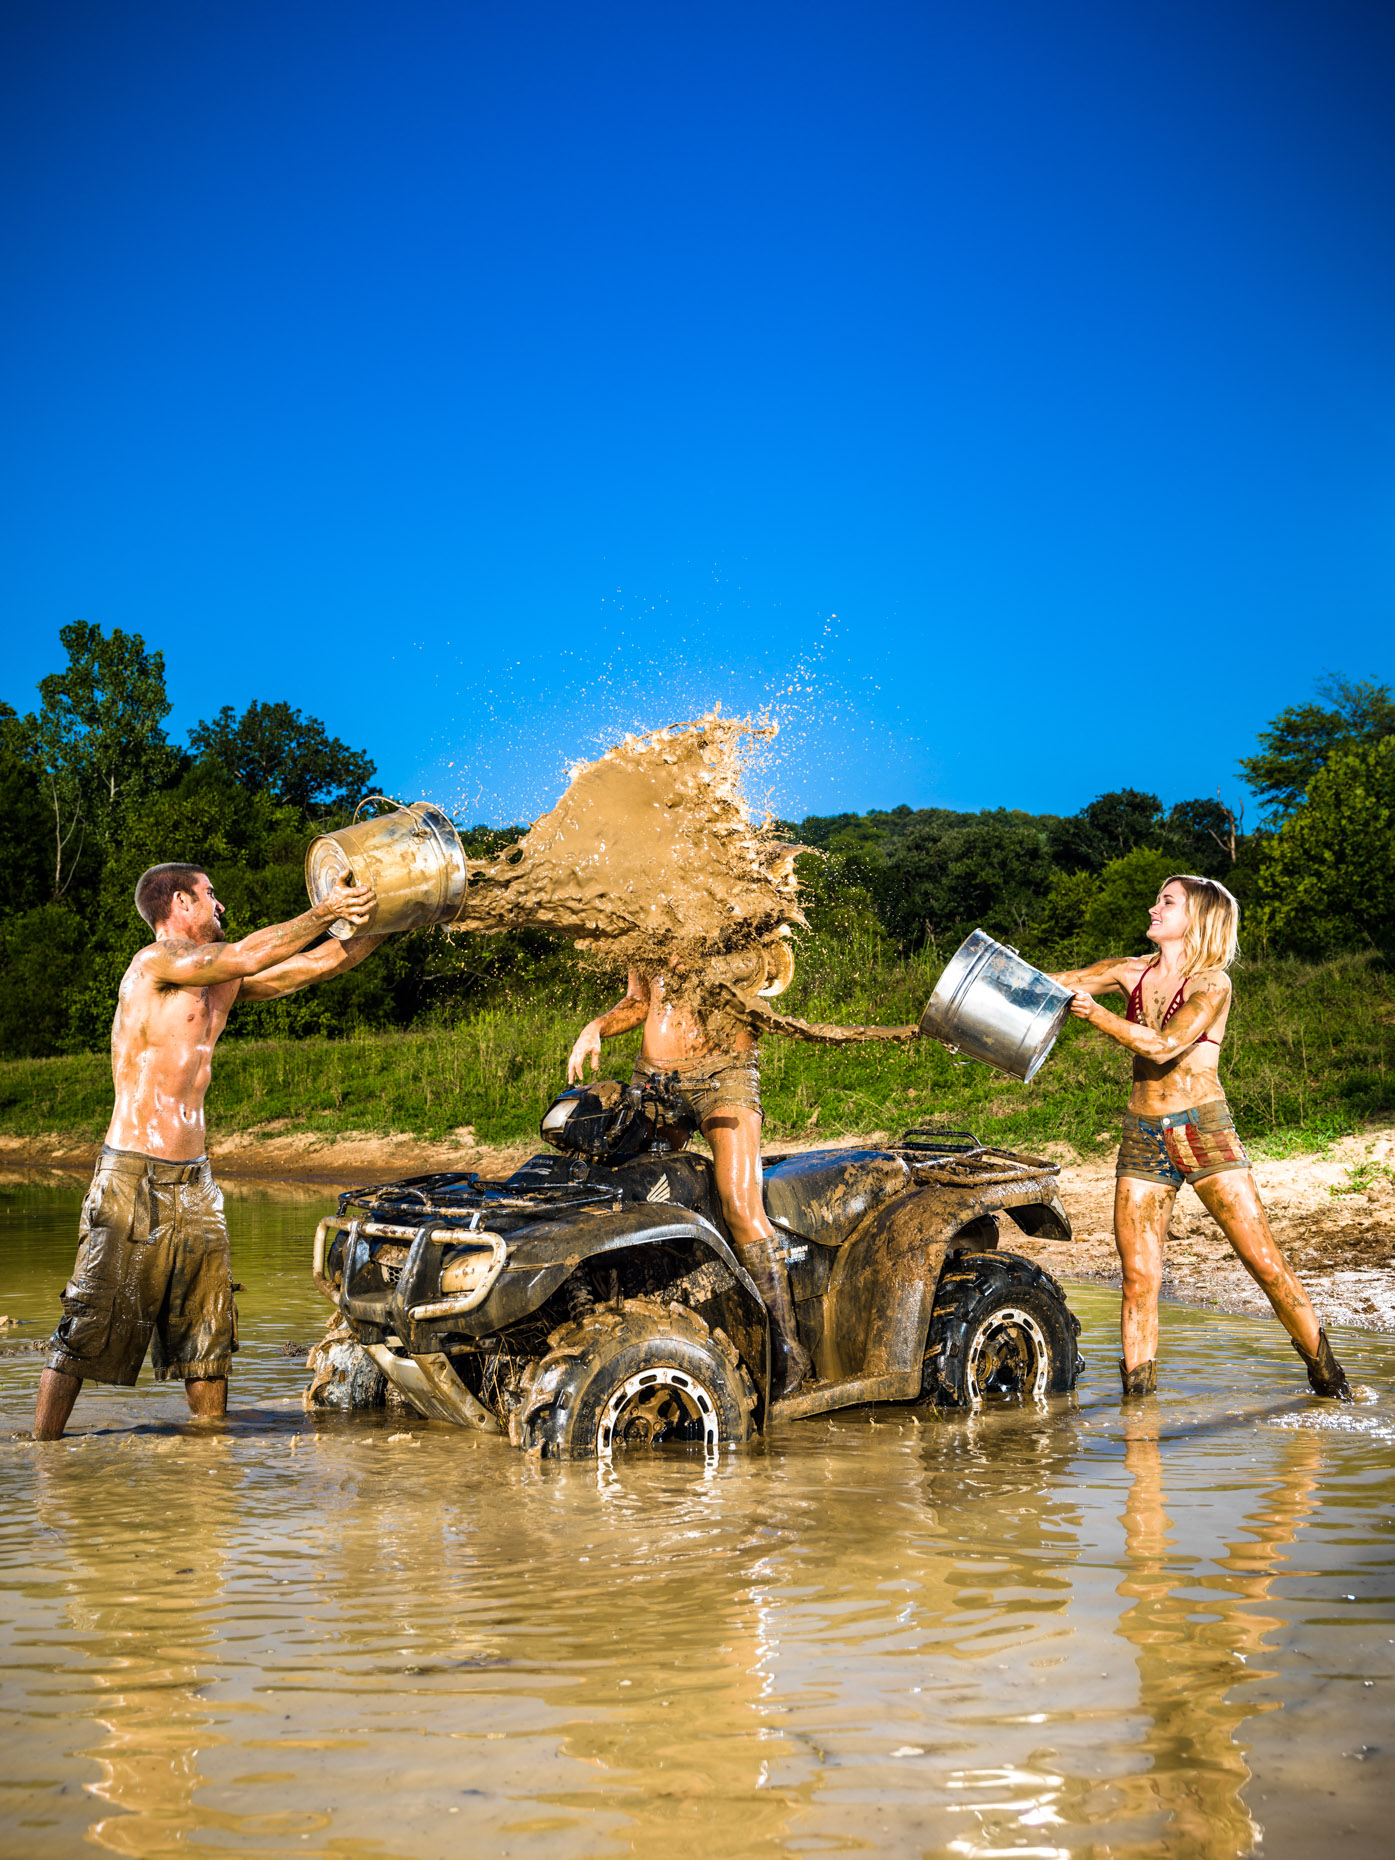 Party Down South 2 gets muddy outside of  Nashville.